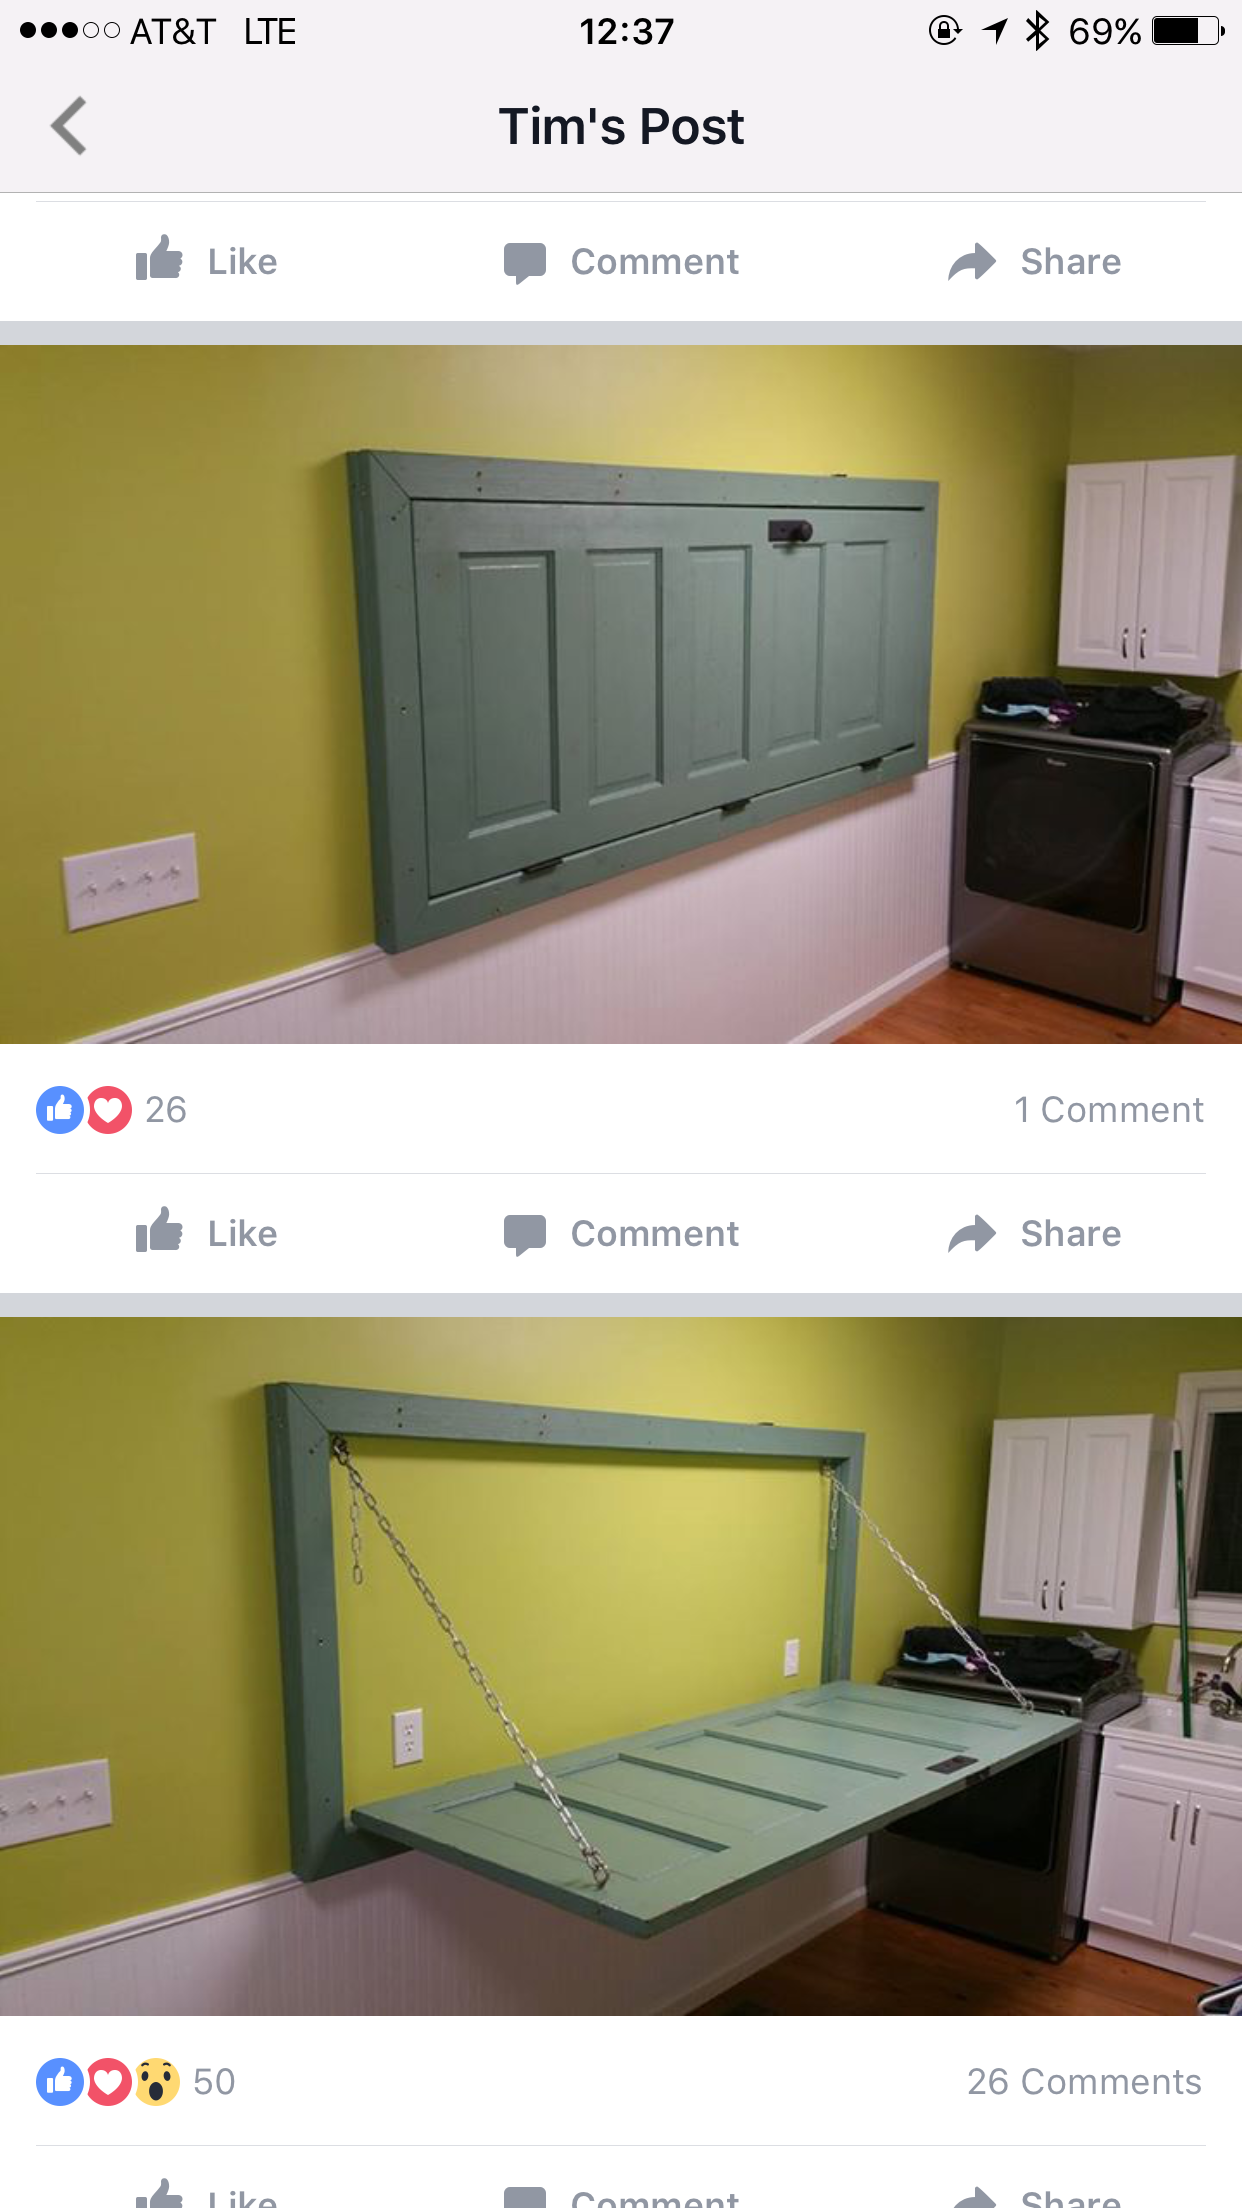 Folding table made out of old wooden door hung on the wall